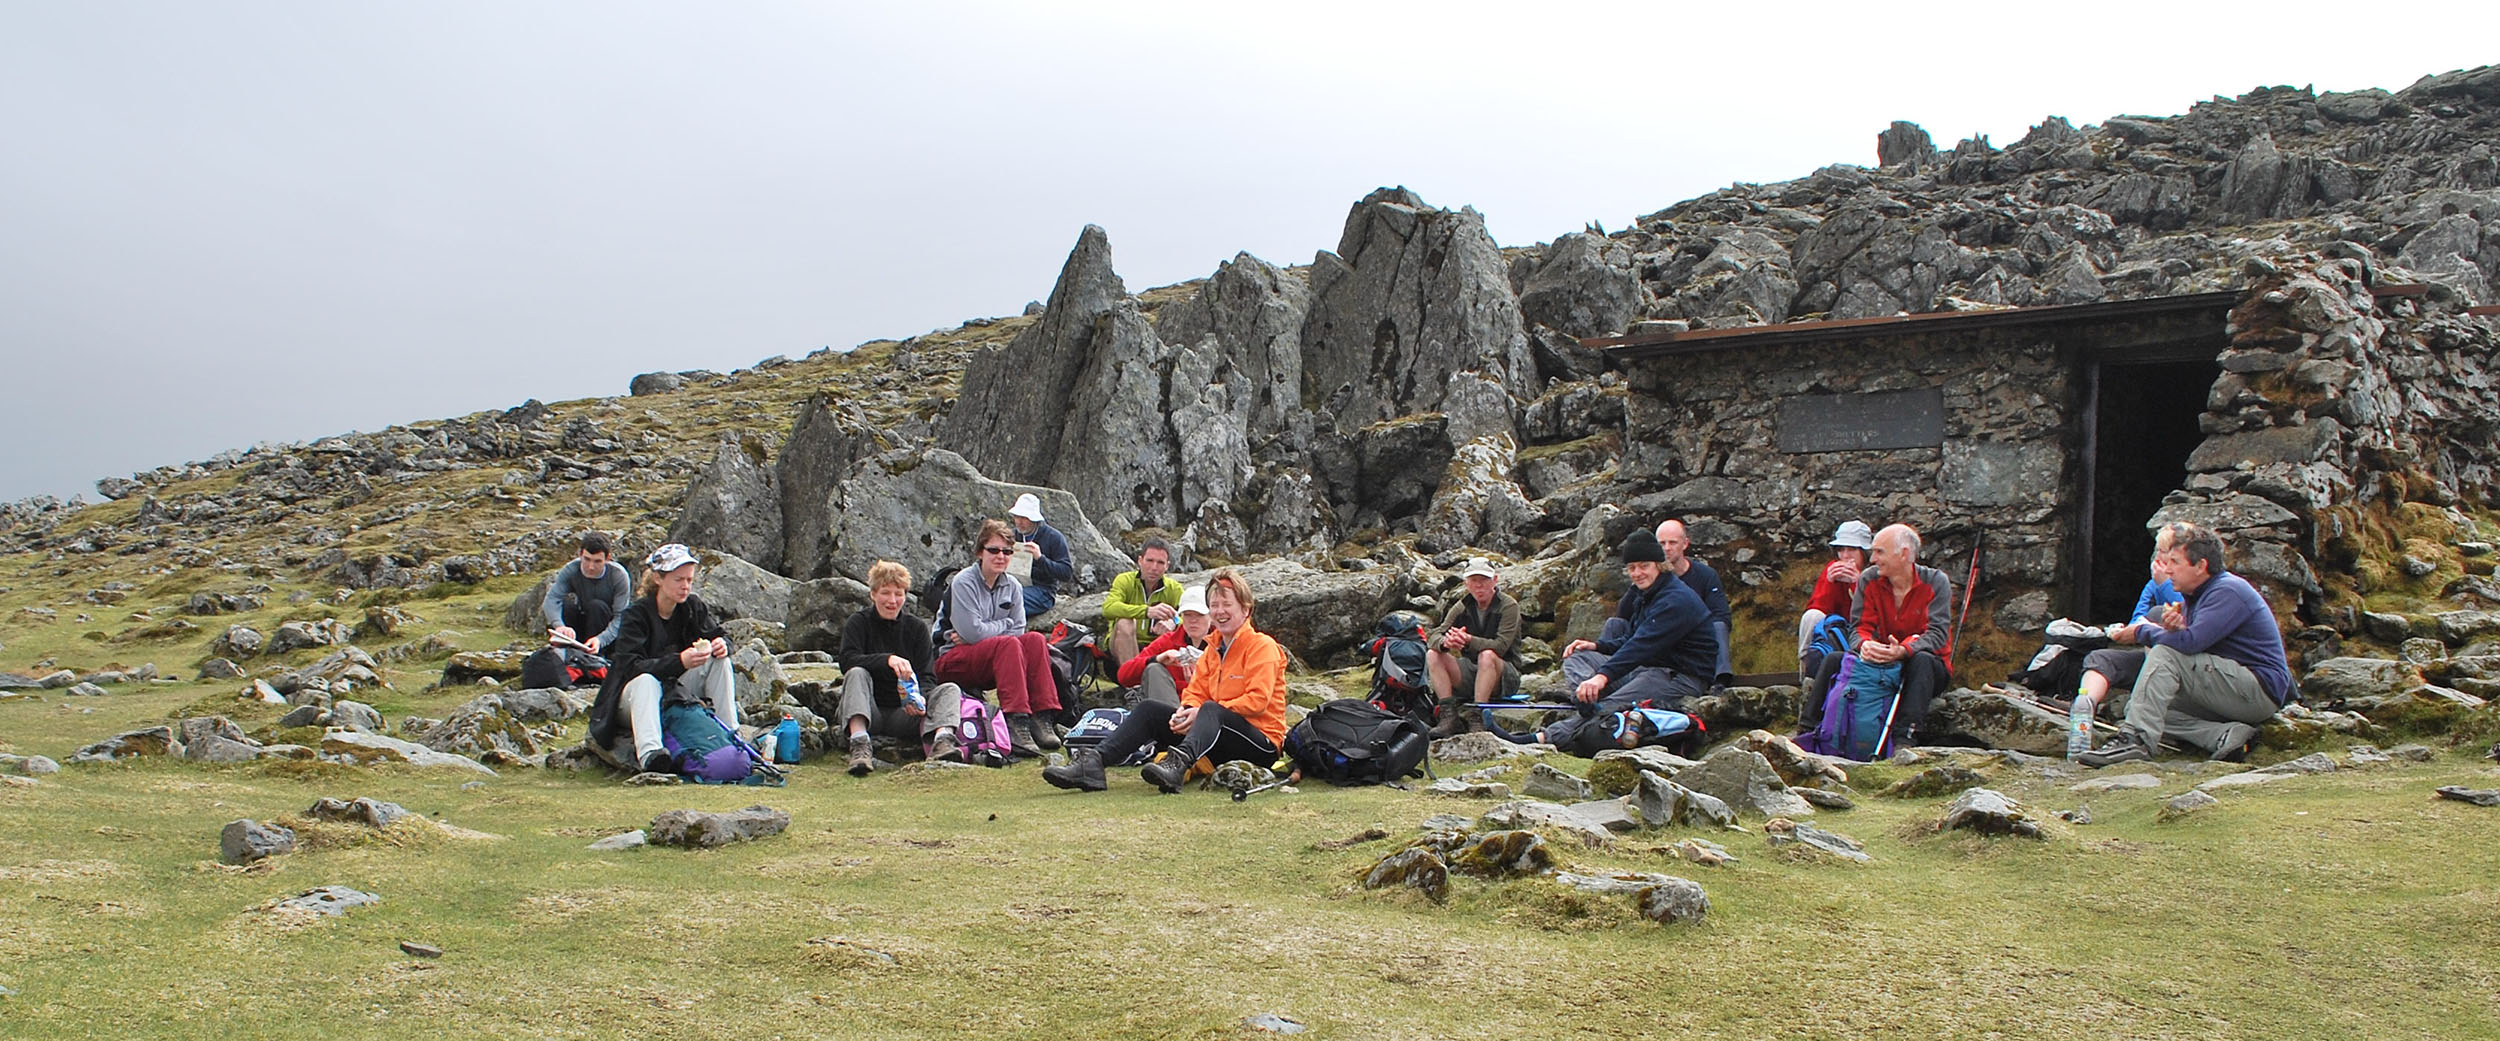 Stopping for Lunch on the Summit of Foel Grach